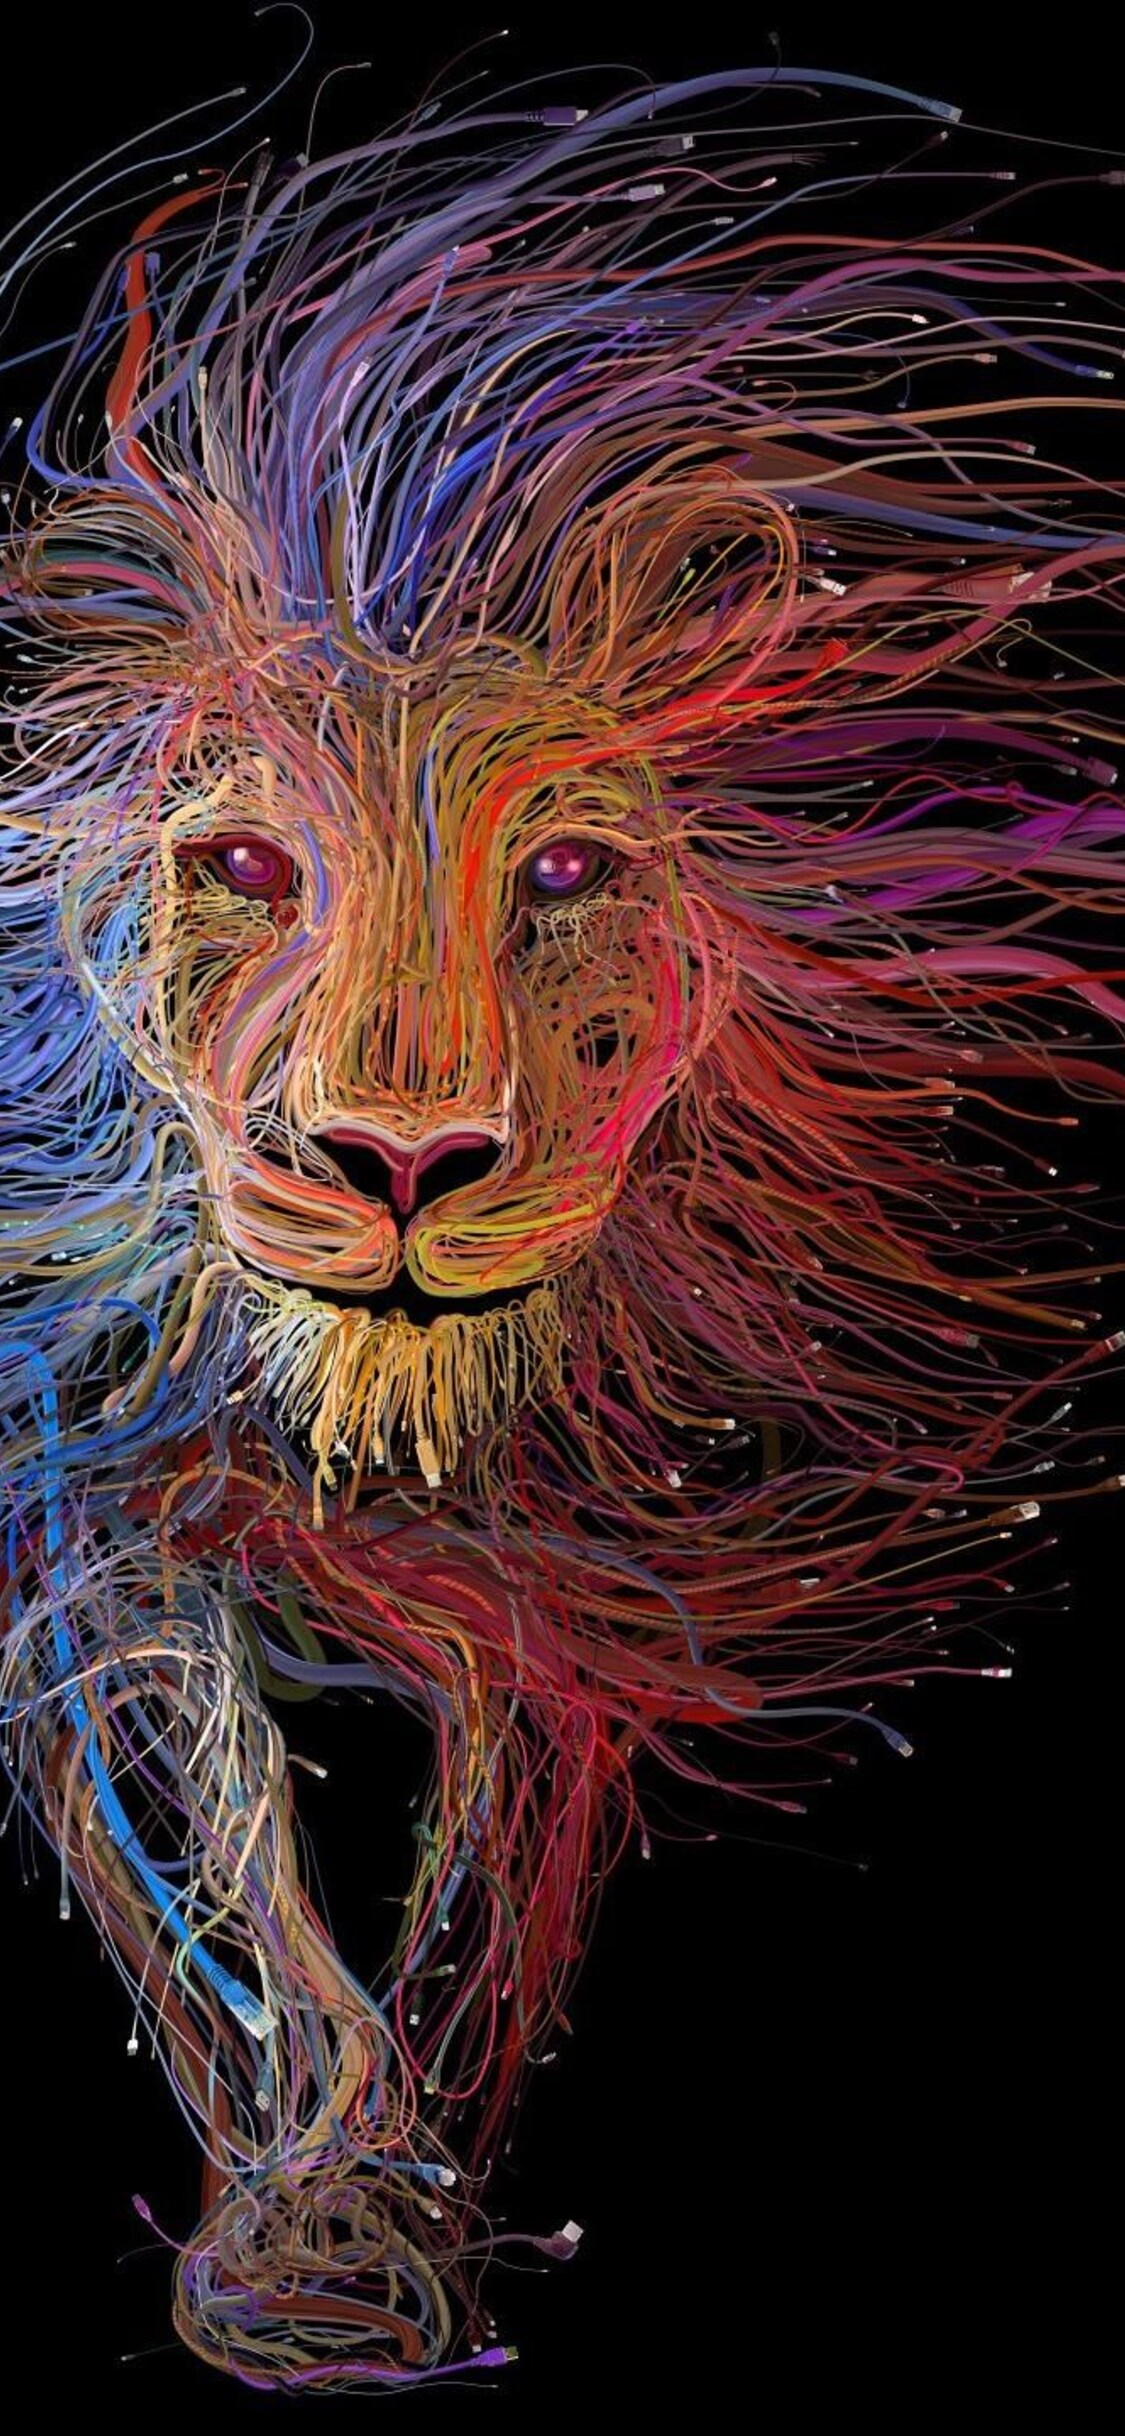 1125x2436 Lion Wires Art Iphone Xs Iphone 10 Iphone X Hd 4k